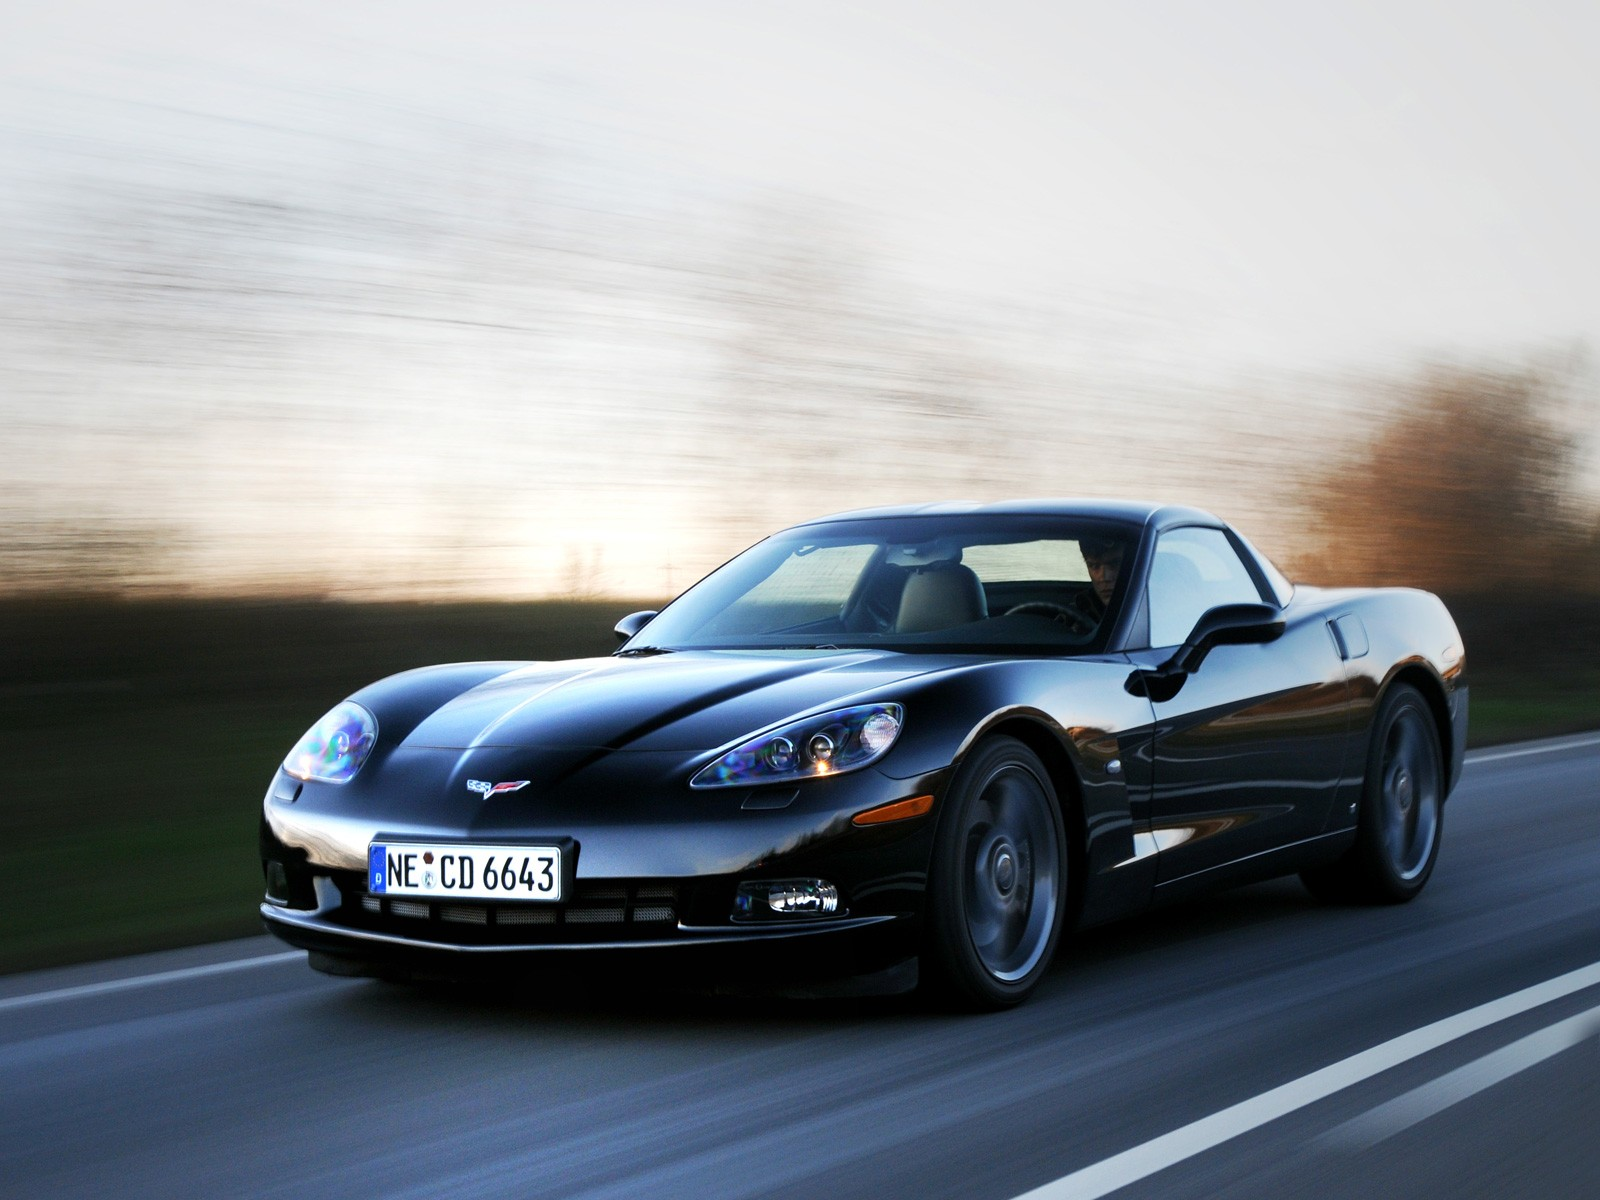 http://3.bp.blogspot.com/-58Zgw5CPYXk/T2HF1MBxpnI/AAAAAAAABfI/lKHNyTMRsio/s1600/chevrolet-corvette-c6-competition-03.jpg